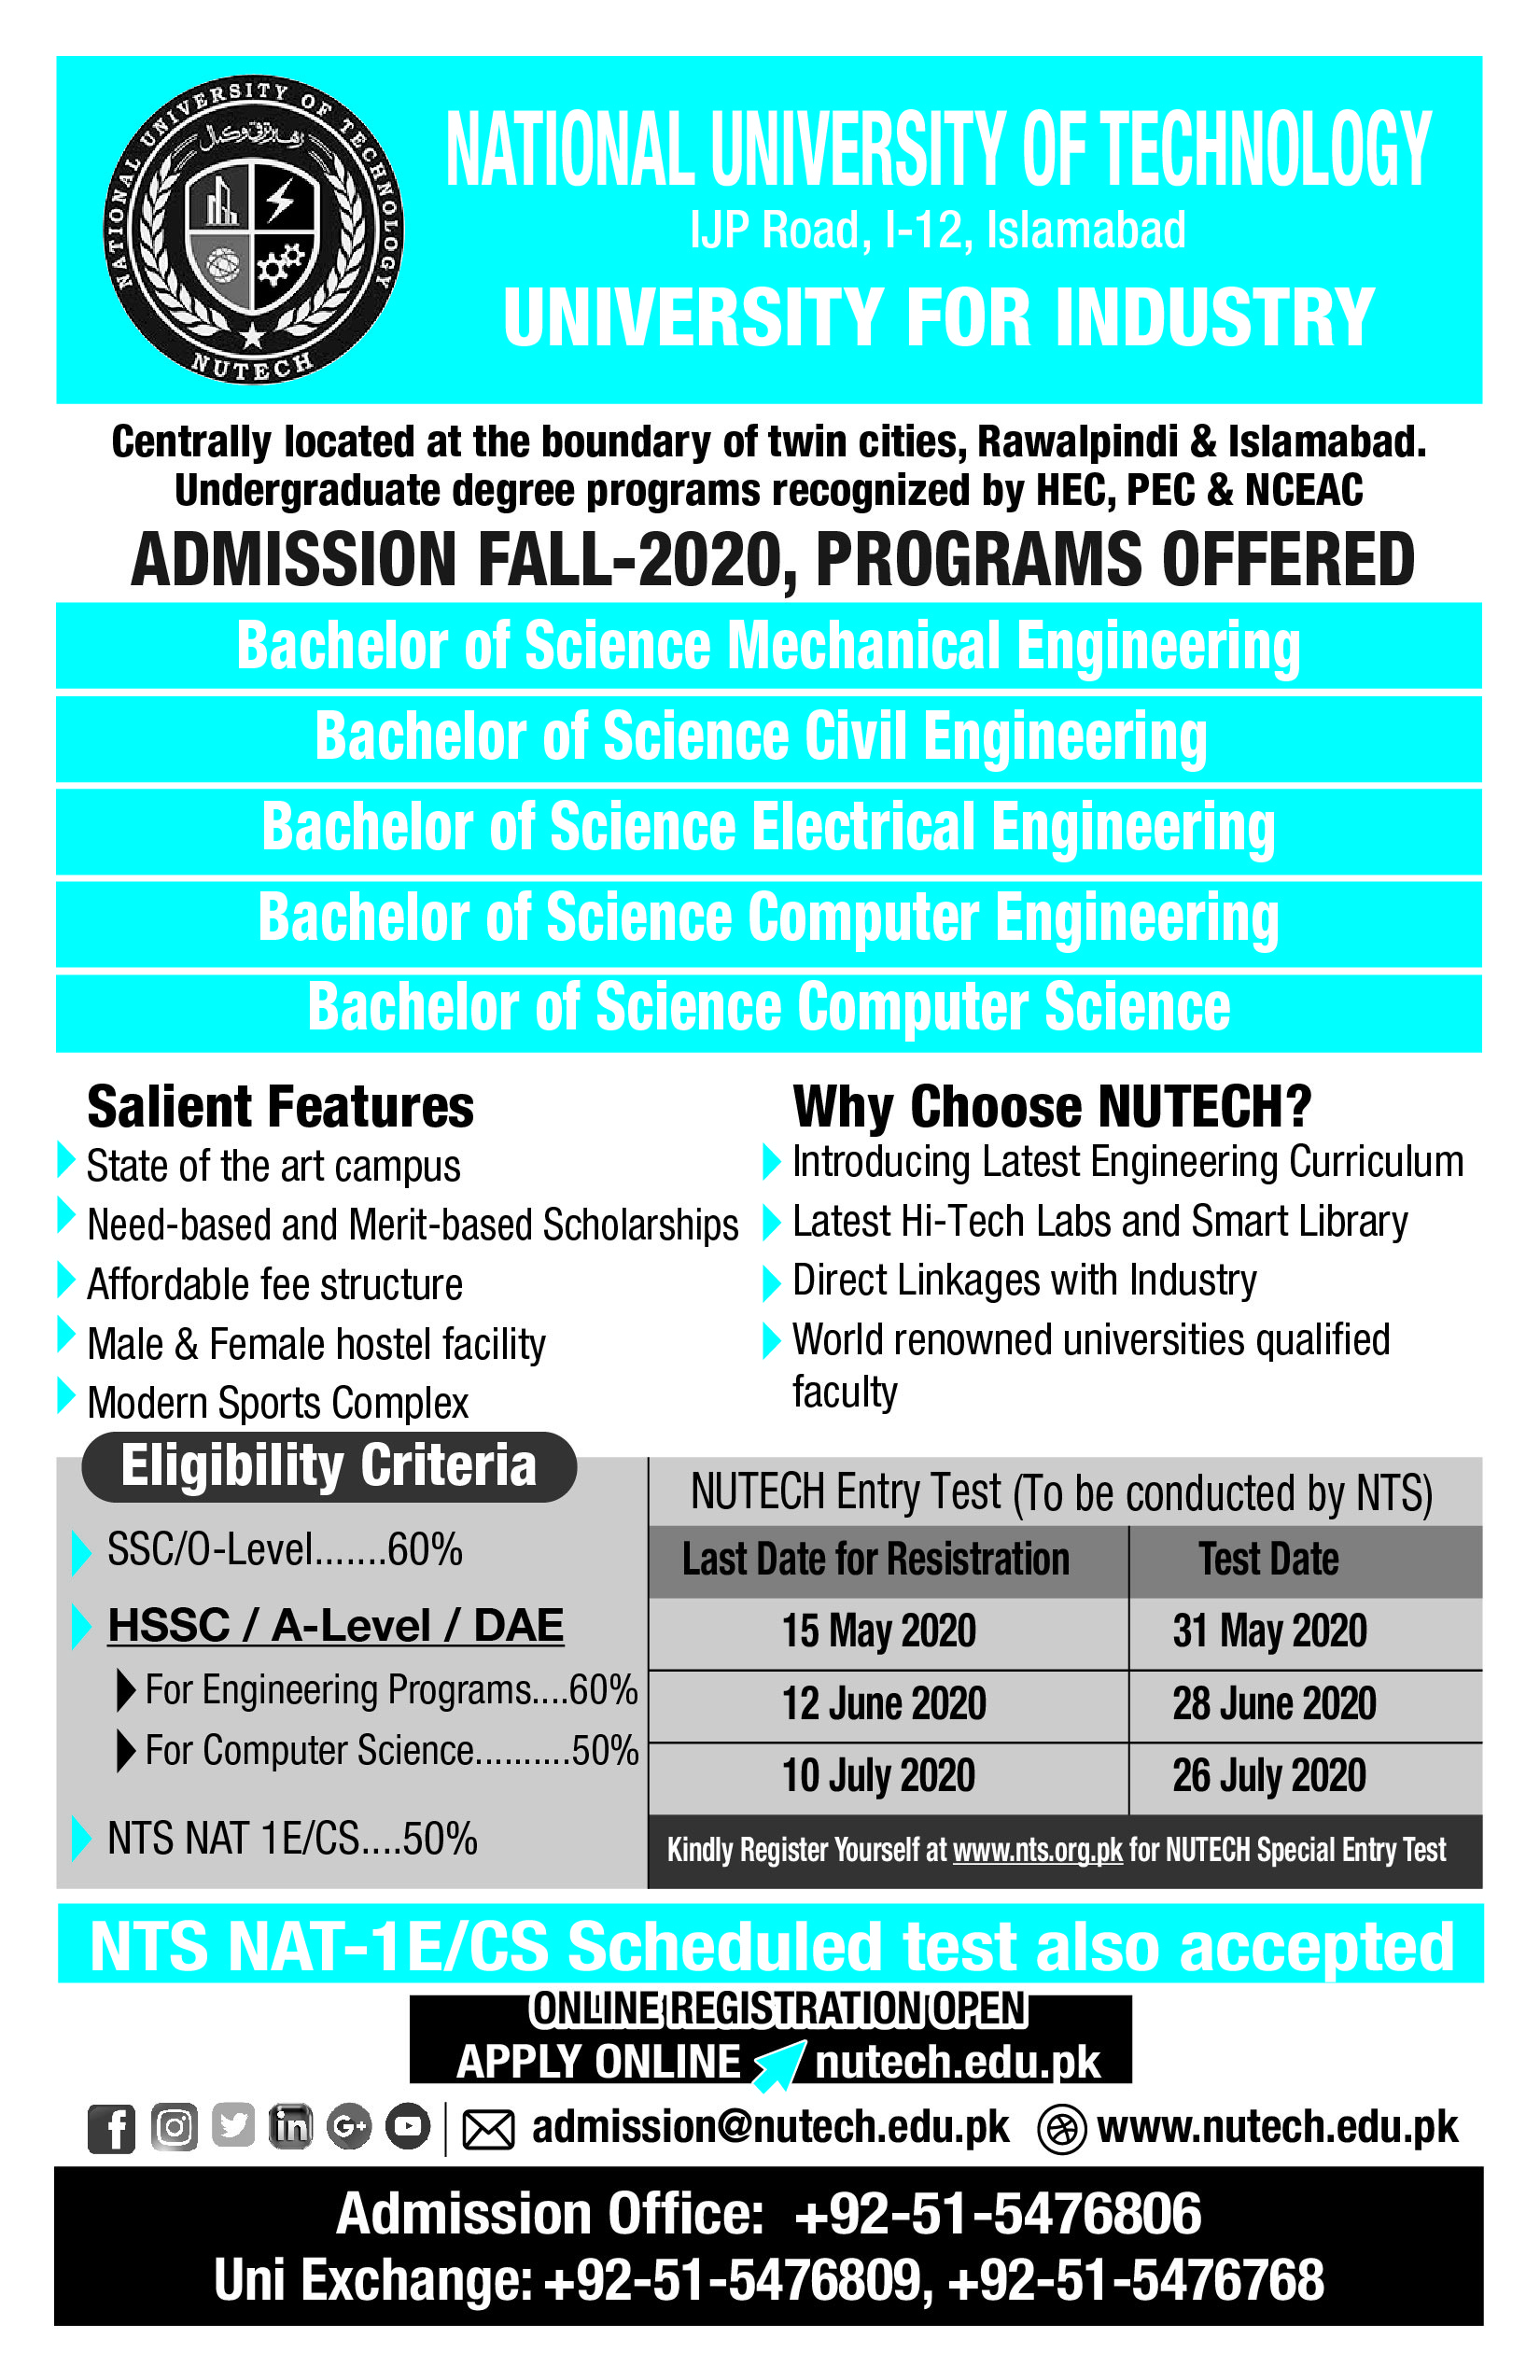 NUTECH Fall Admission 2020